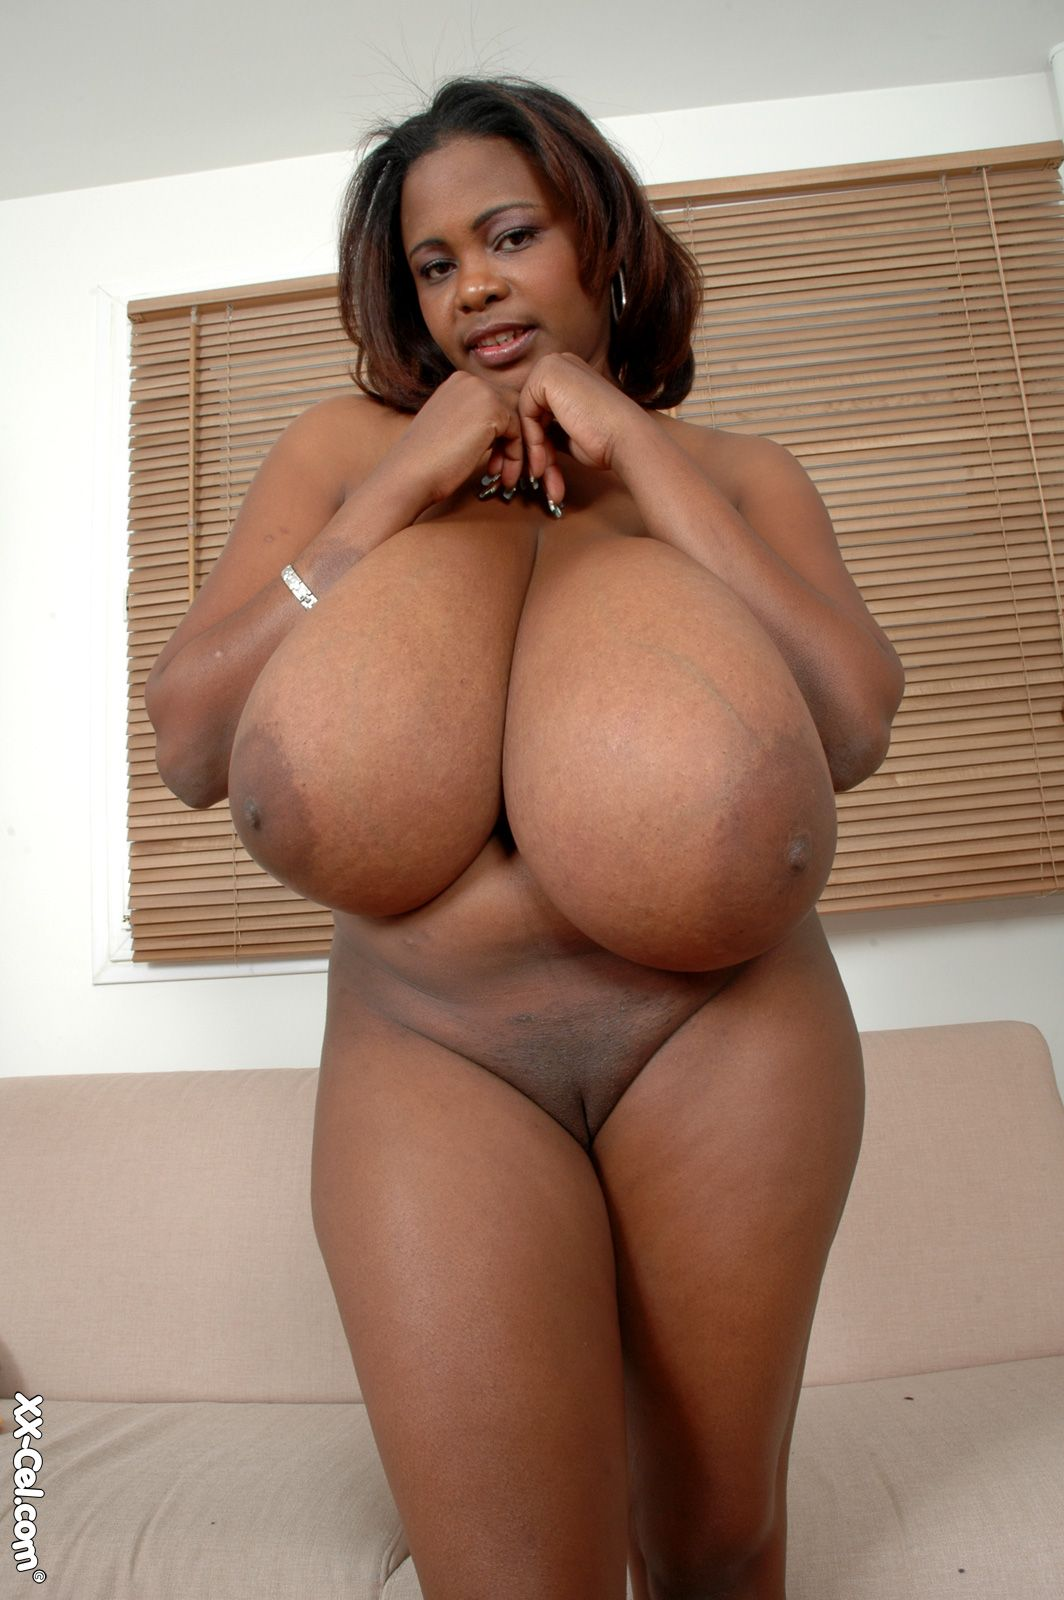 giant titts tgp jpg 1500x1000